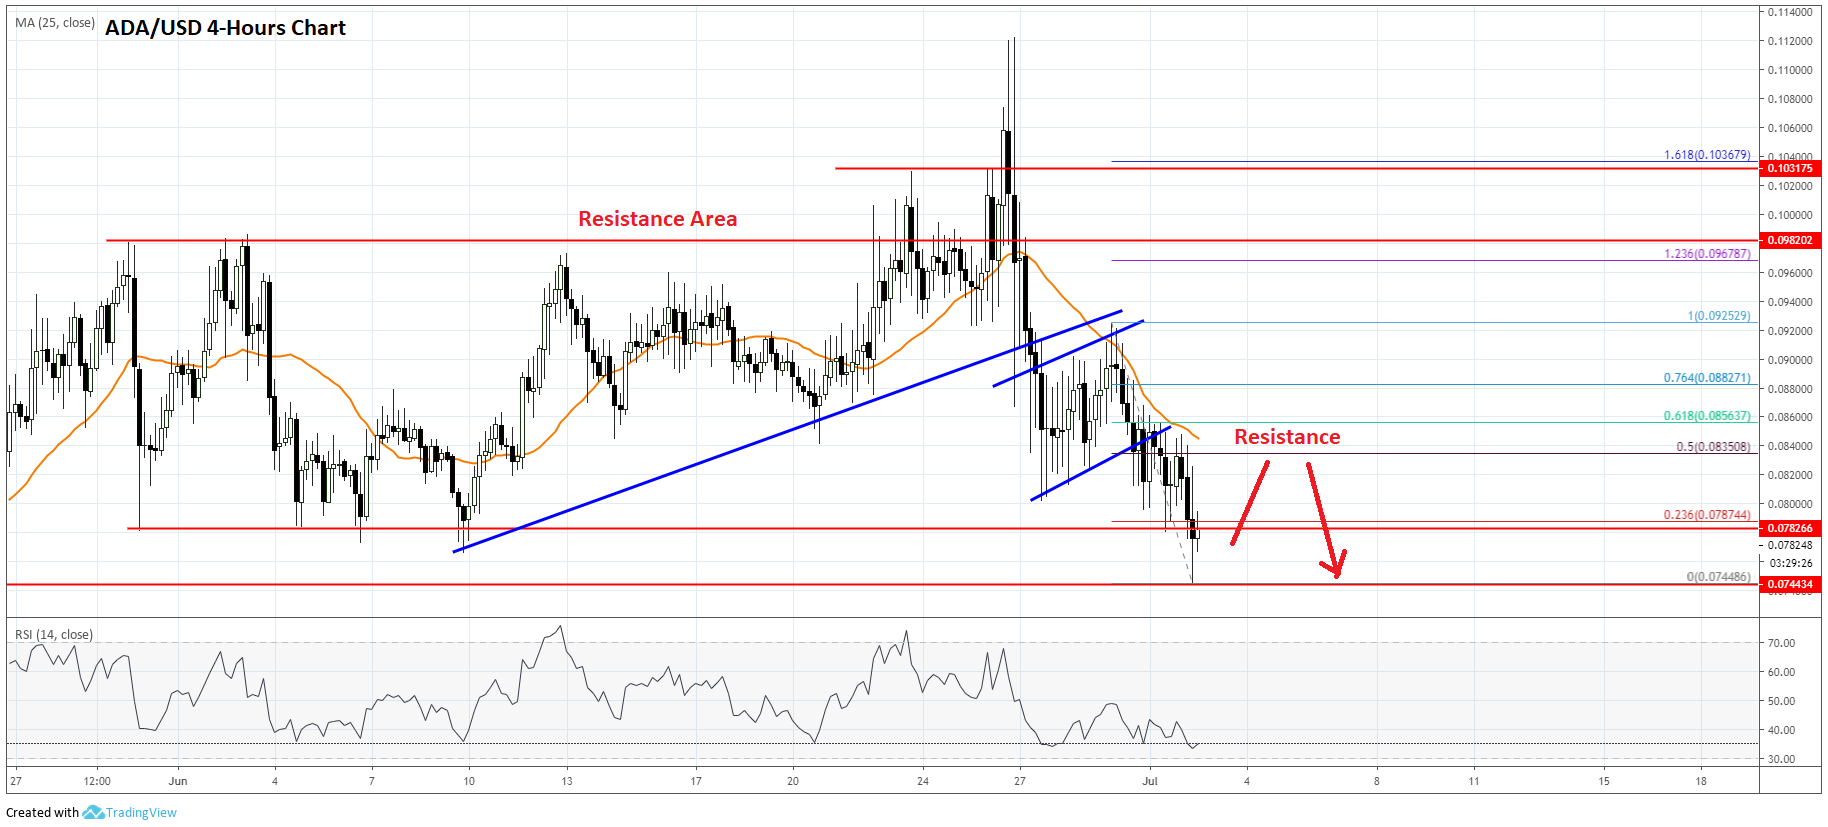 Cardano Price Analysis (ADA to USD)